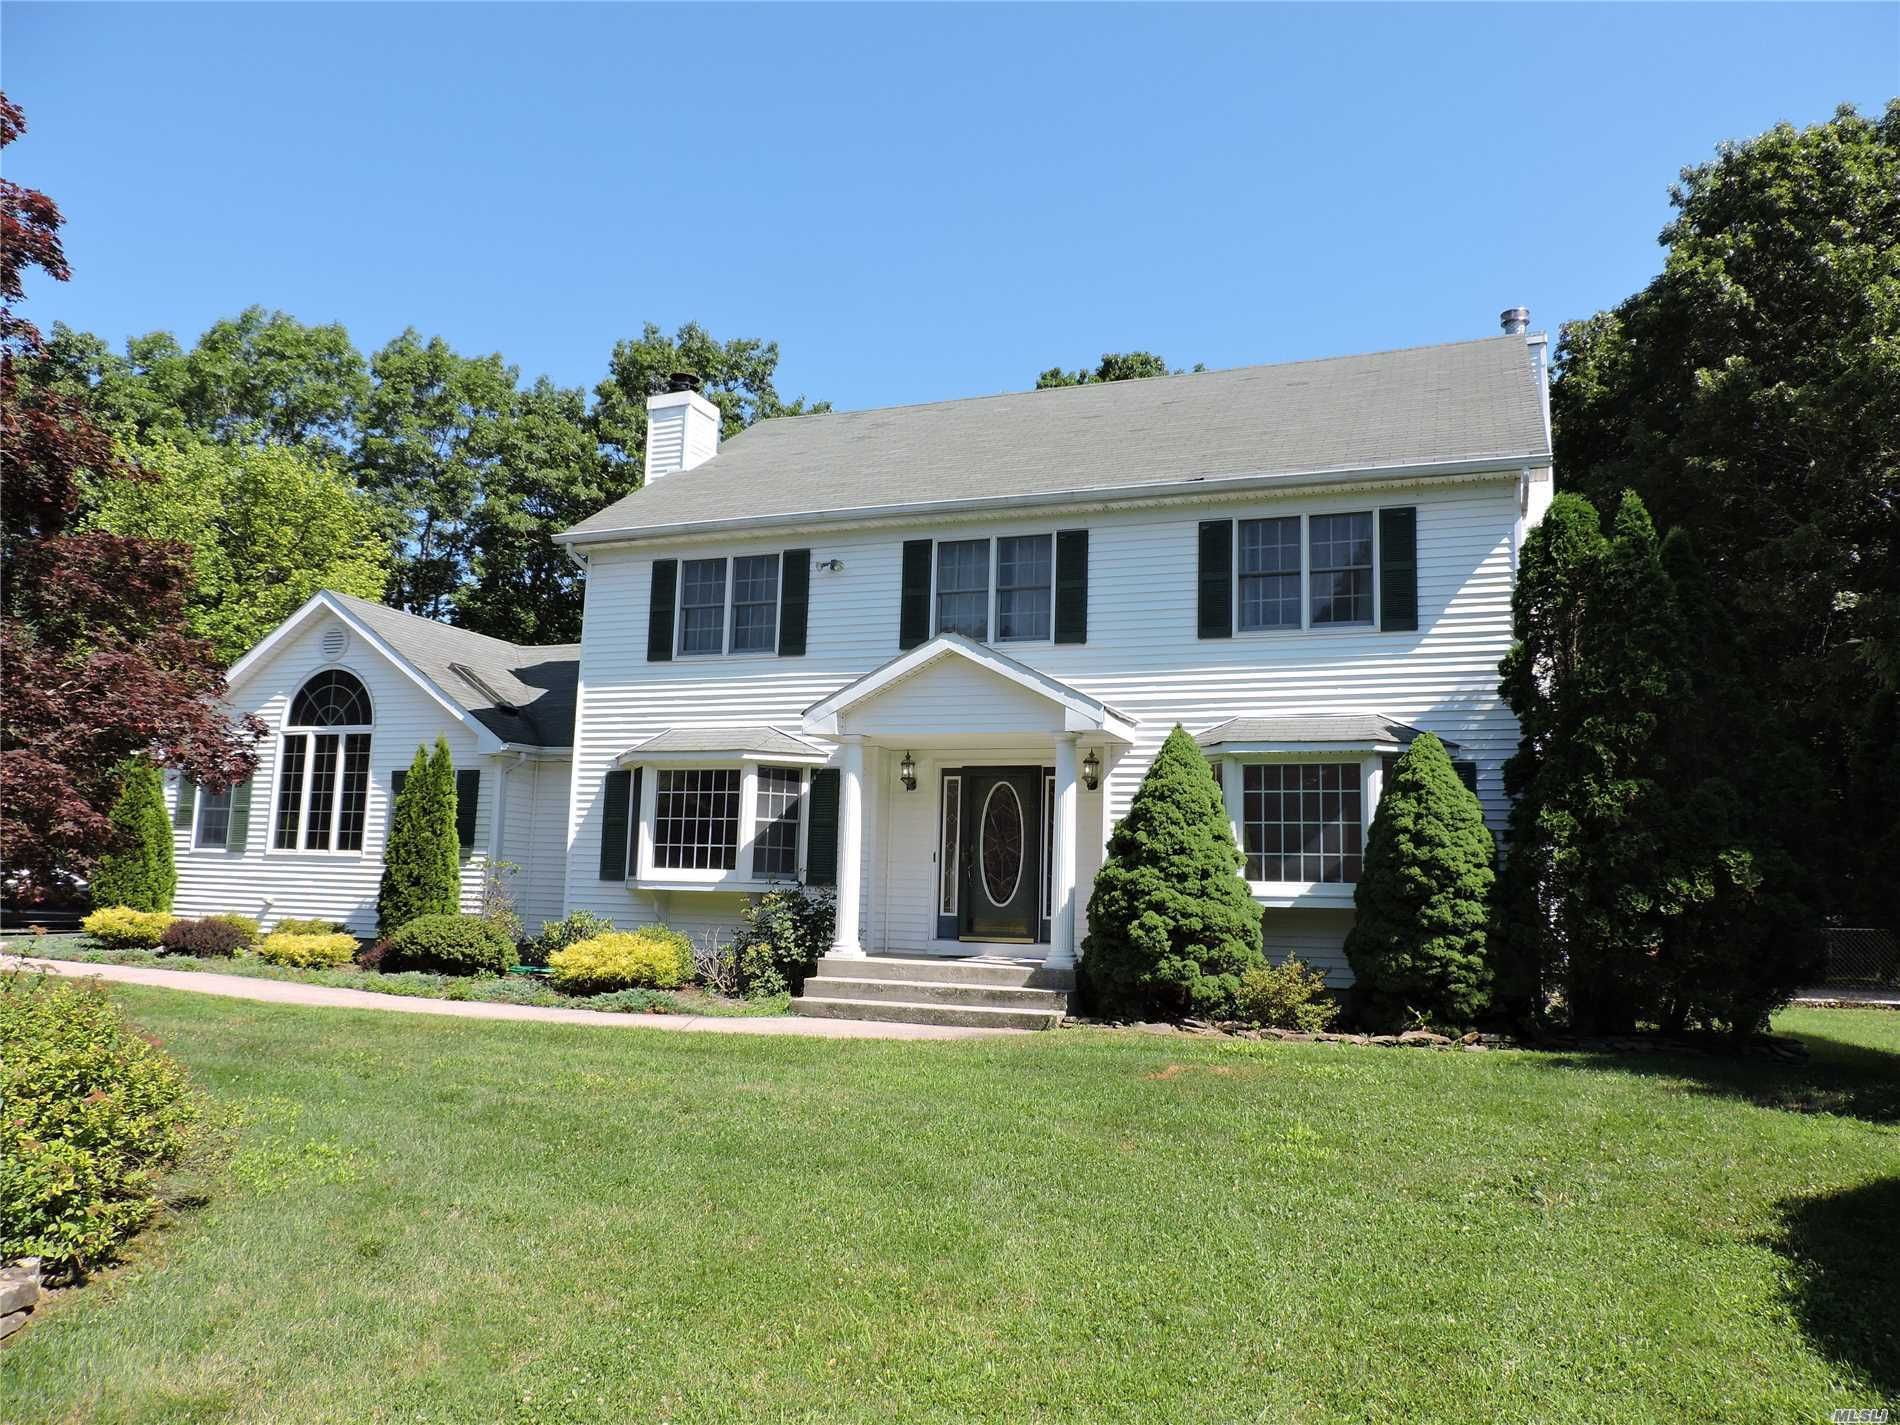 Fabulous 3200 Sq Ft Executive Colonial In Desirable Oak Hills Estates. All Updated With Large Rooms. Huge Master Suite W/ Full Bath, Great Room With Fireplace & Den With Fireplace. Hardwood Floors Through Out, Finished Basement With Playroom & Office. Large Private Fenced Yard. Pool Covered With Loop Lock Cover